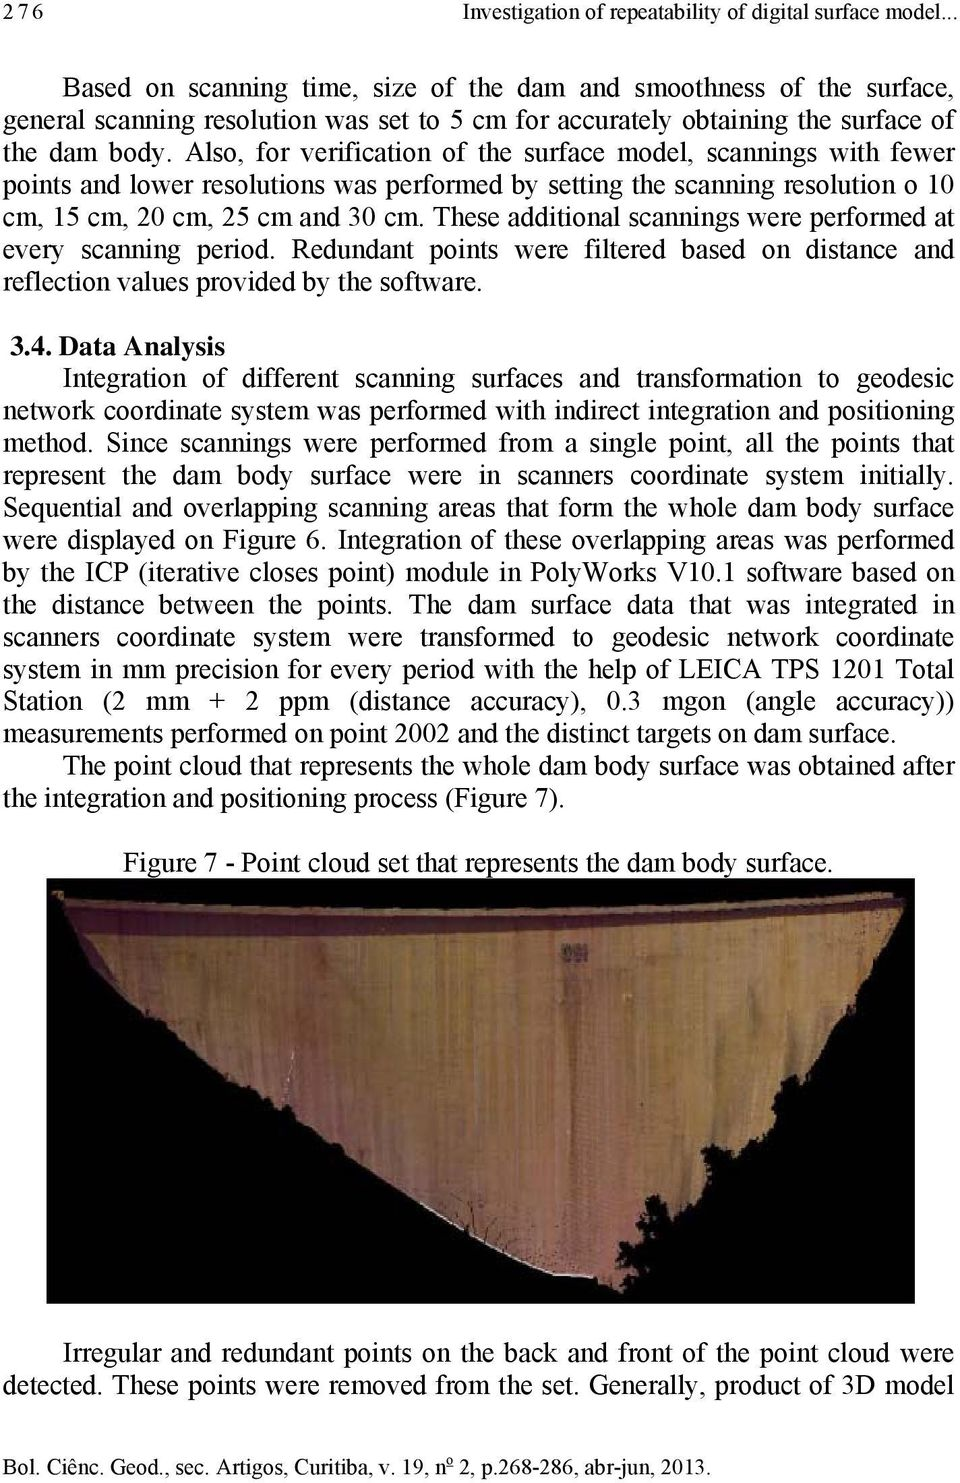 Also, for verification of the surface model, scannings with fewer points and lower resolutions was performed by setting the scanning resolution o 10 cm, 15 cm, 20 cm, 25 cm and 30 cm.